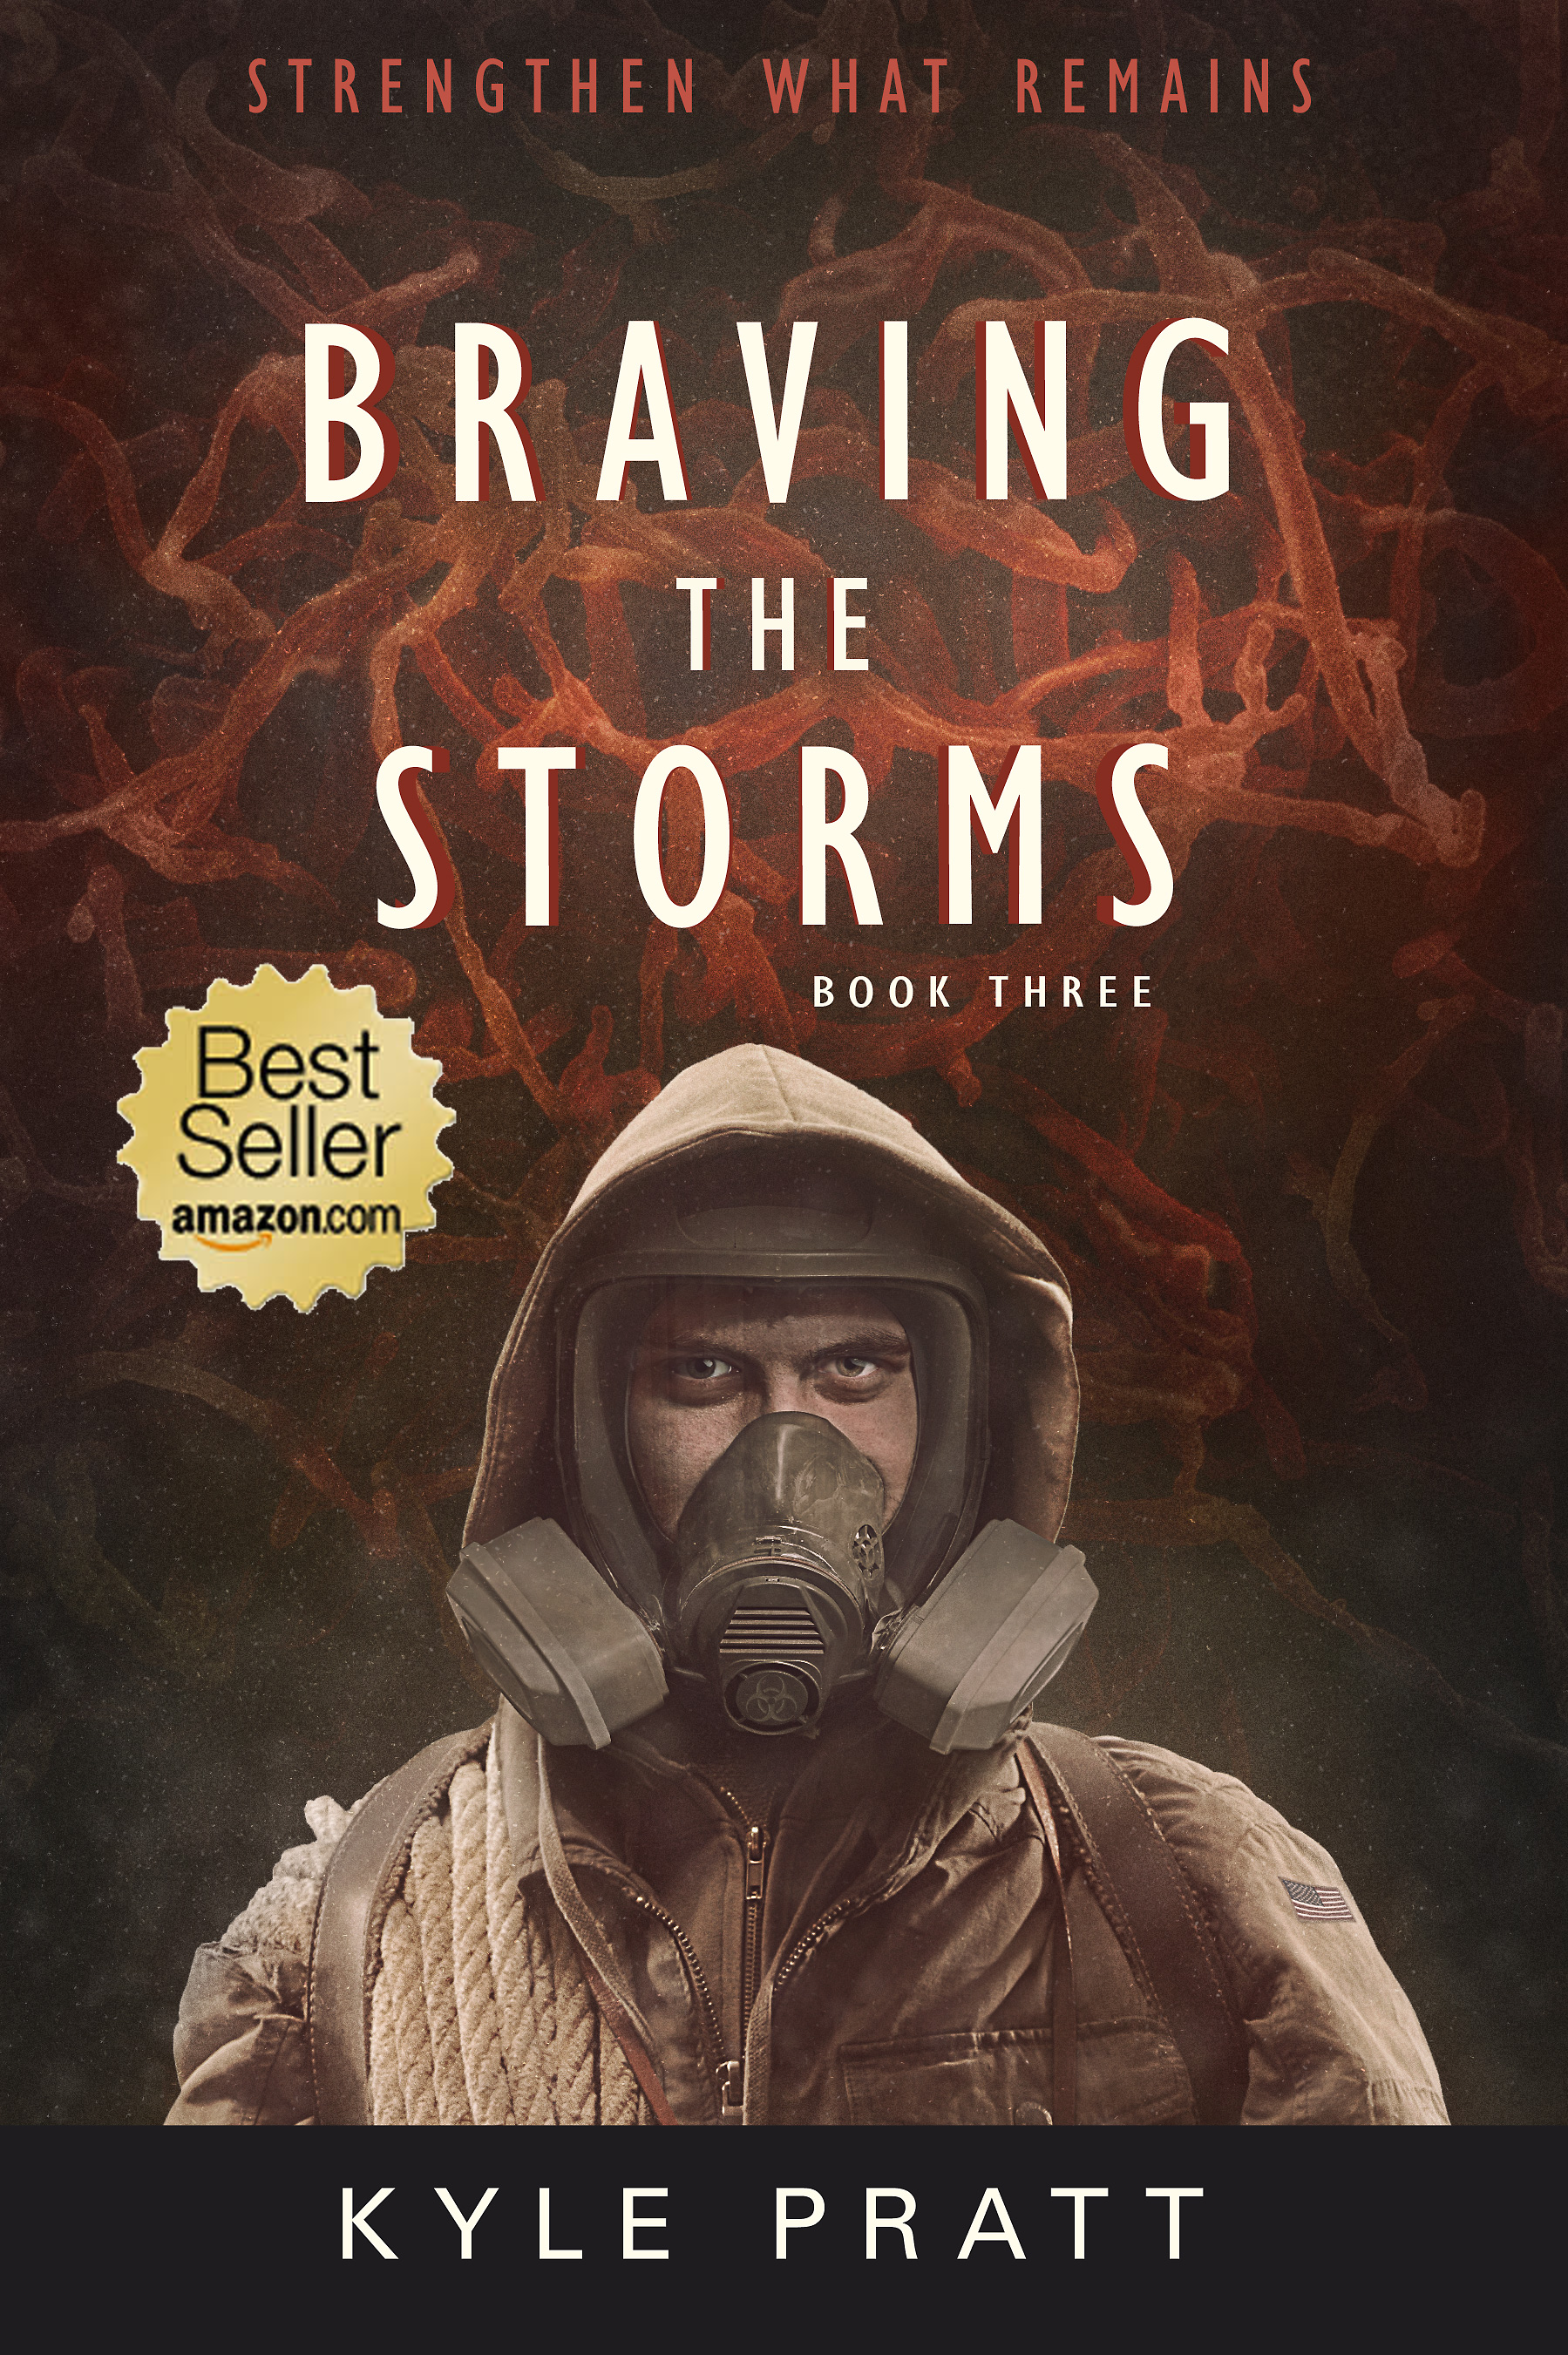 Braving the Storms    The third full-length novel in the Strengthen What Remains series.    Amazon bestseller   A swift and deadly flu epidemic sweeps out of overcrowded FEMA camps and strikes the nation with horrific results. Caden Westmore struggles to keep his family and community safe, while others use the plague to advance their own military and political agendas. Caden must succeed, but how can he, when both the epidemic and chaos attack his hometown and family?